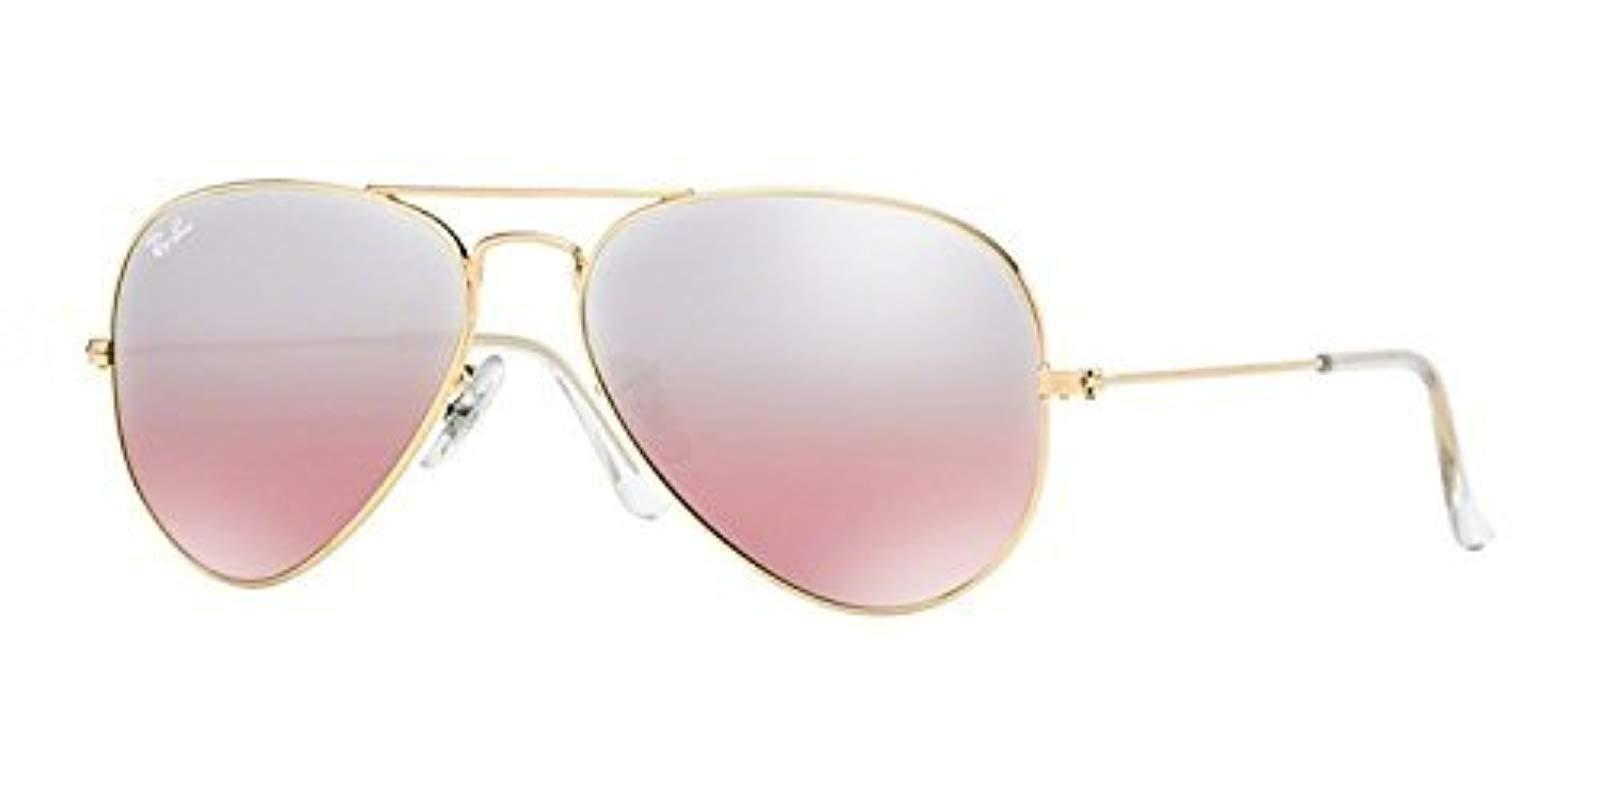 79a3dcc1172 Lyst - Ray-Ban Rb3025 Aviator Large Metal Unisex Sunglasses in Pink